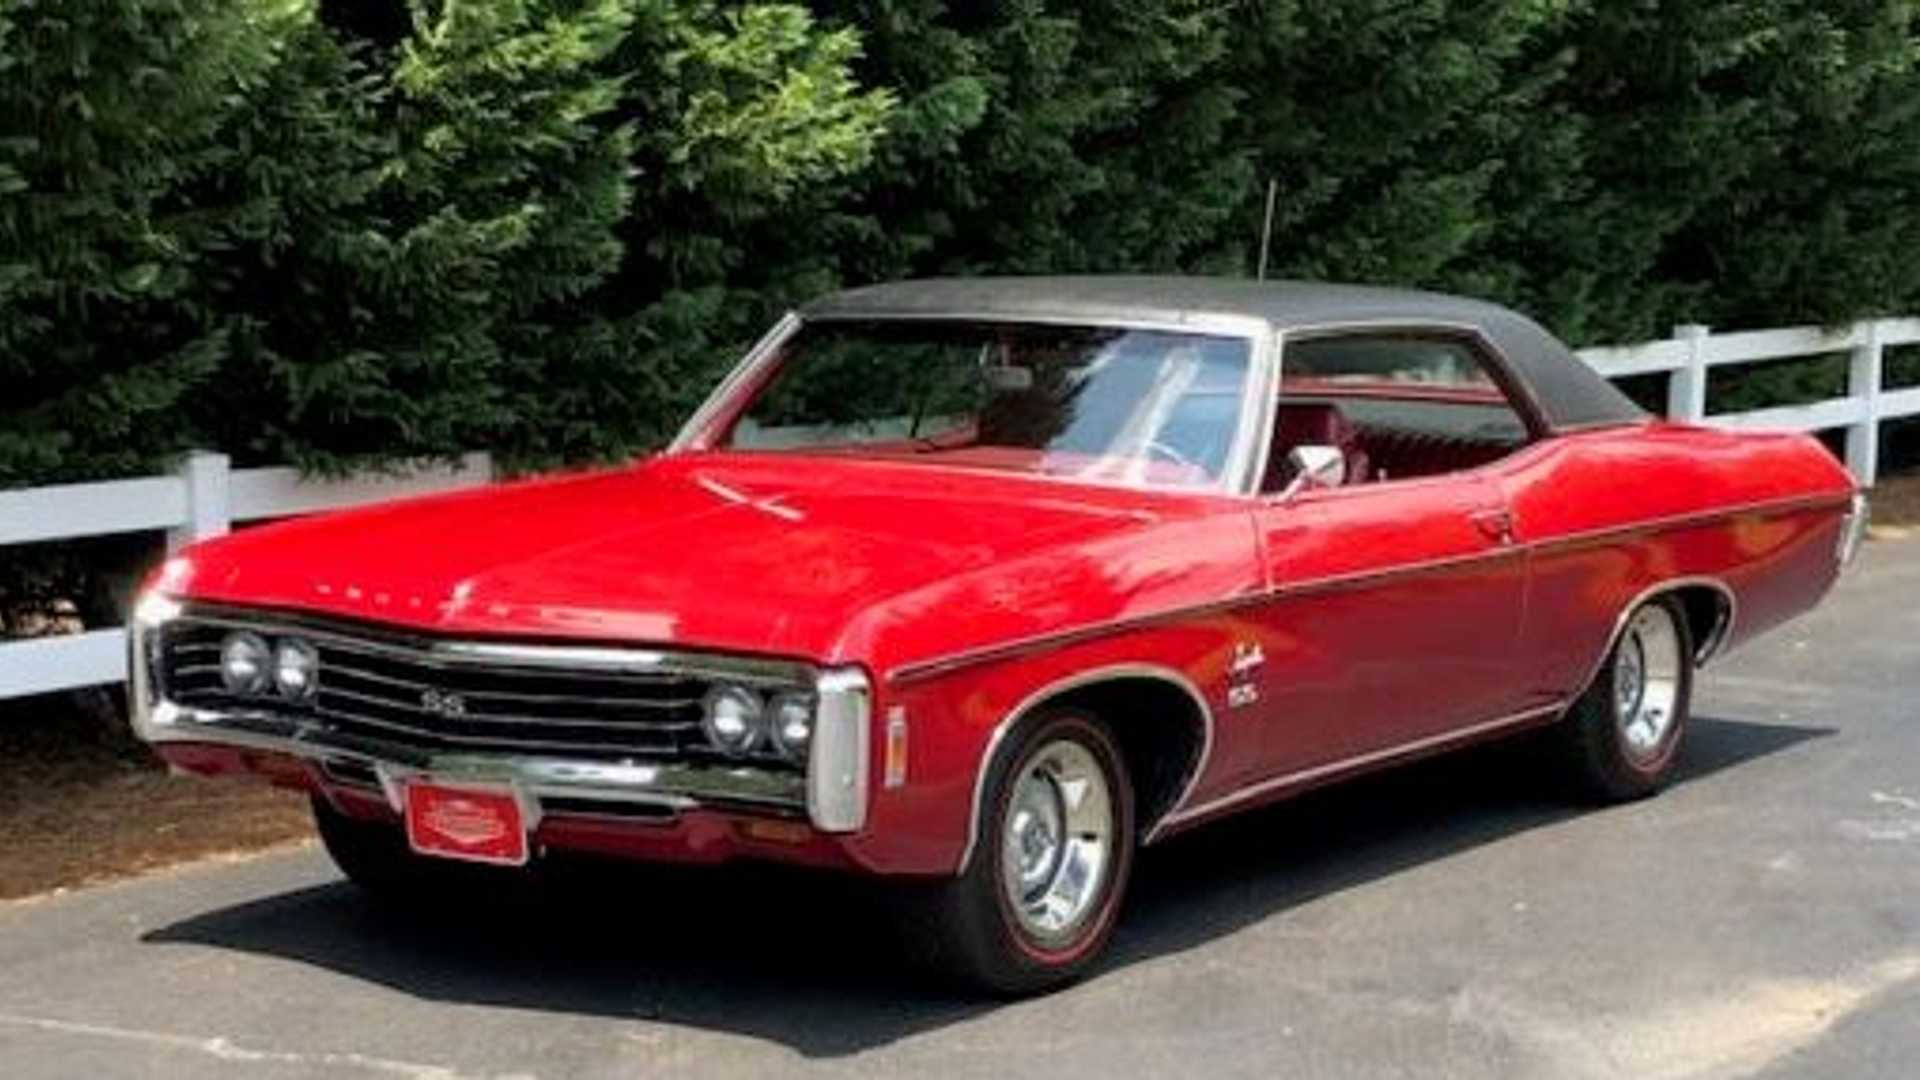 Phenomenal 1969 Impala Ss Sport Coupe Packs A 427 Punch Motorious Gmtry Best Dining Table And Chair Ideas Images Gmtryco